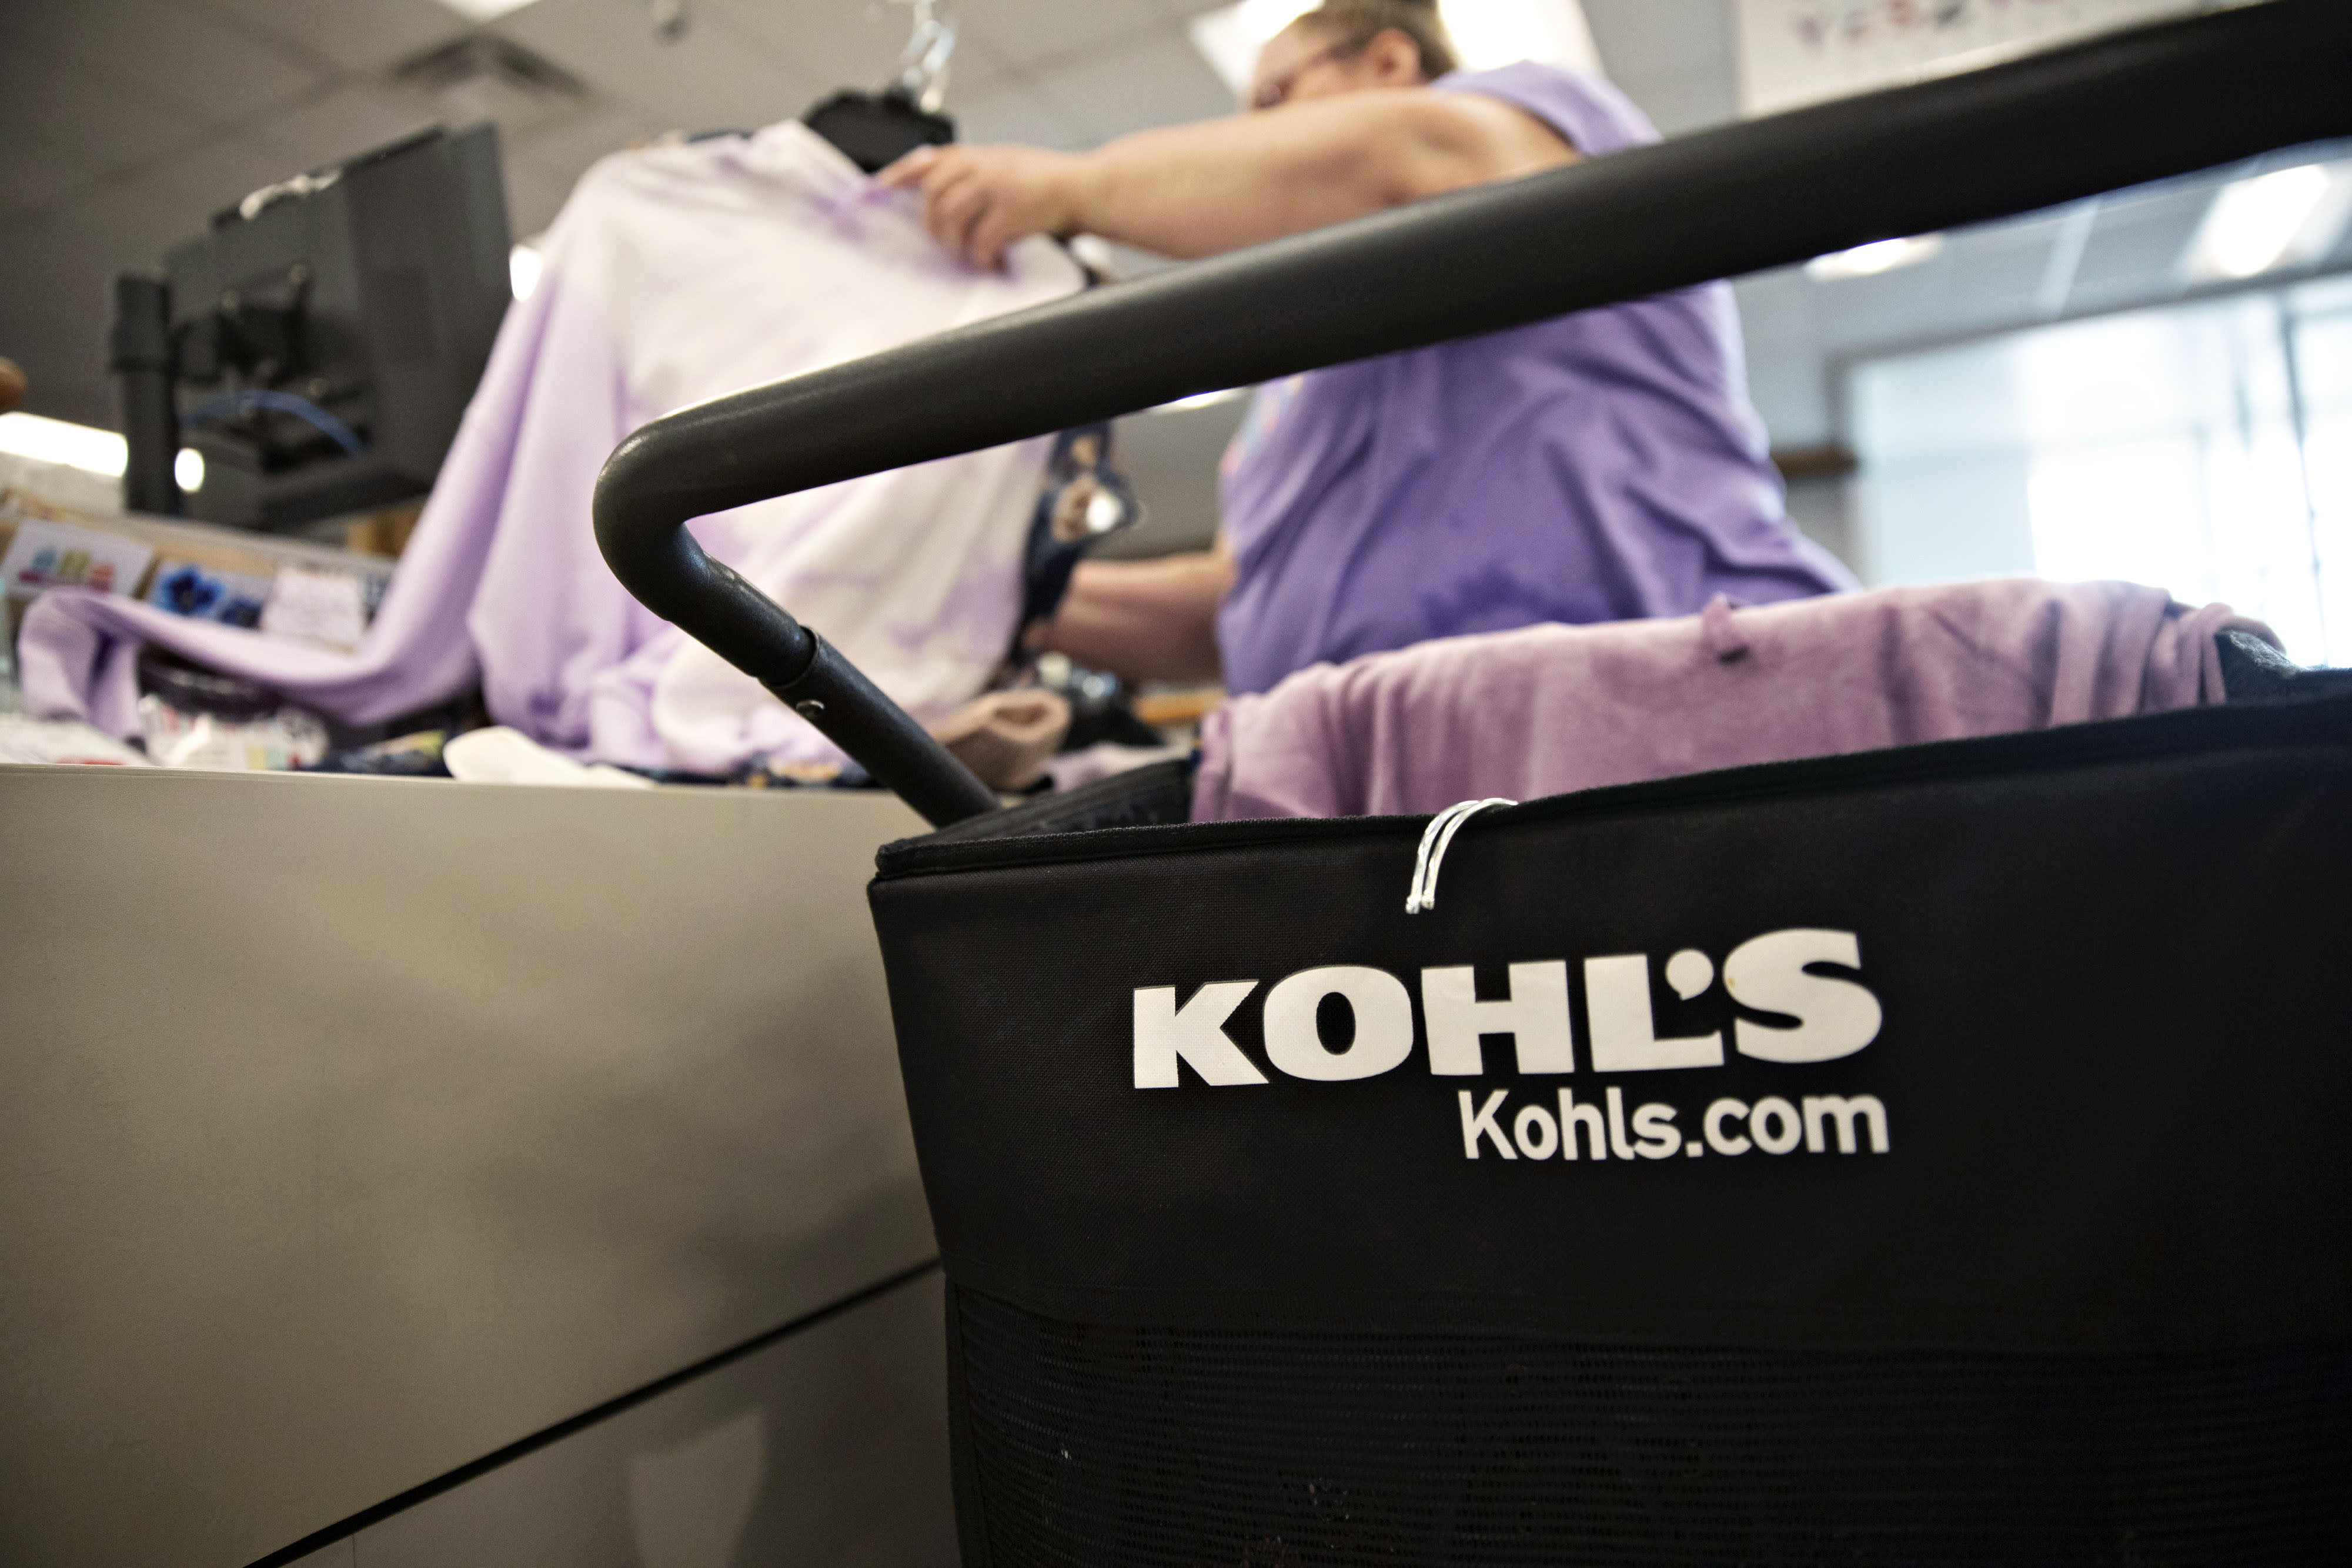 Retailers such as Kohl's are 'in trouble' without better digital presence or bargains, Jim Cramer says